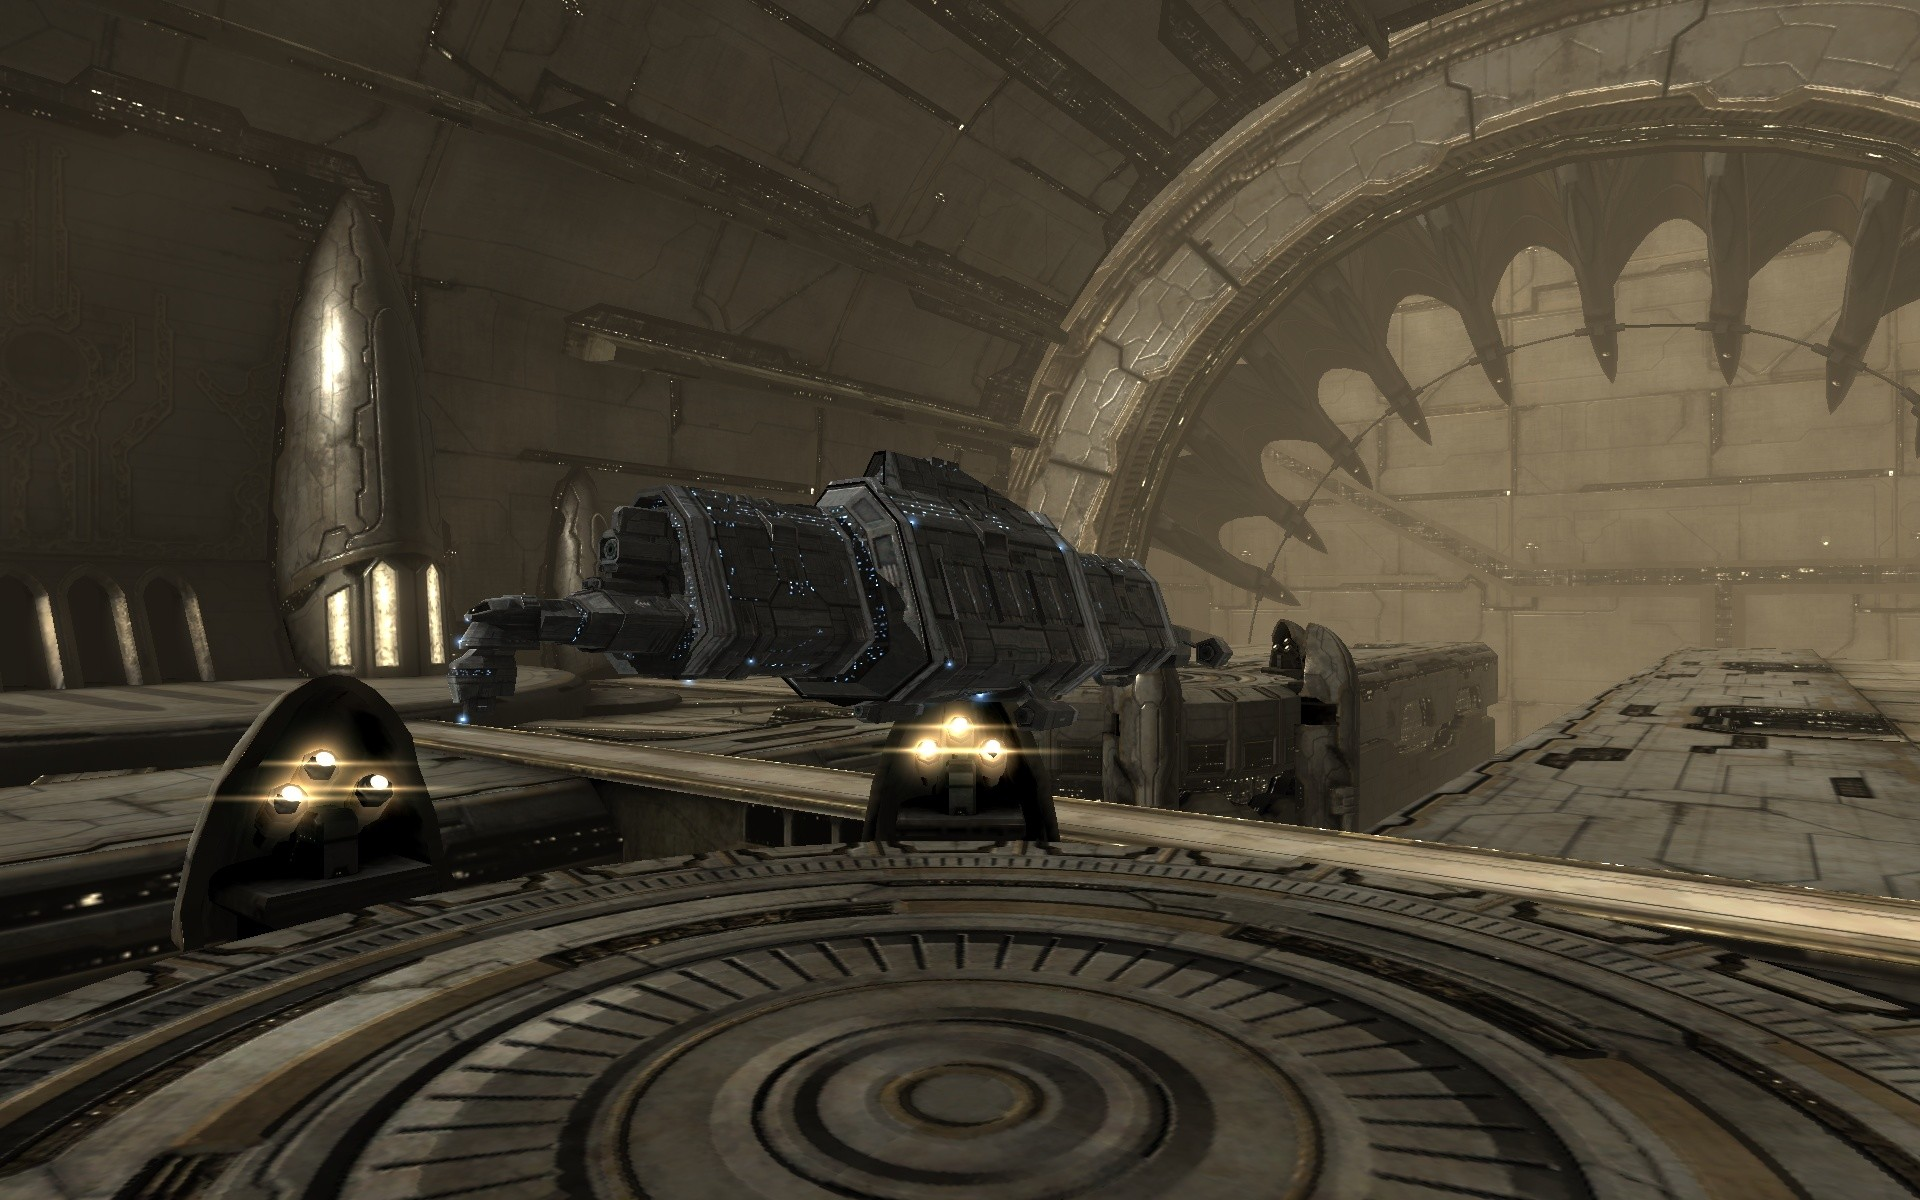 EVE Online - (New premium graphics) My Badger Mk2 in an Amarr space station